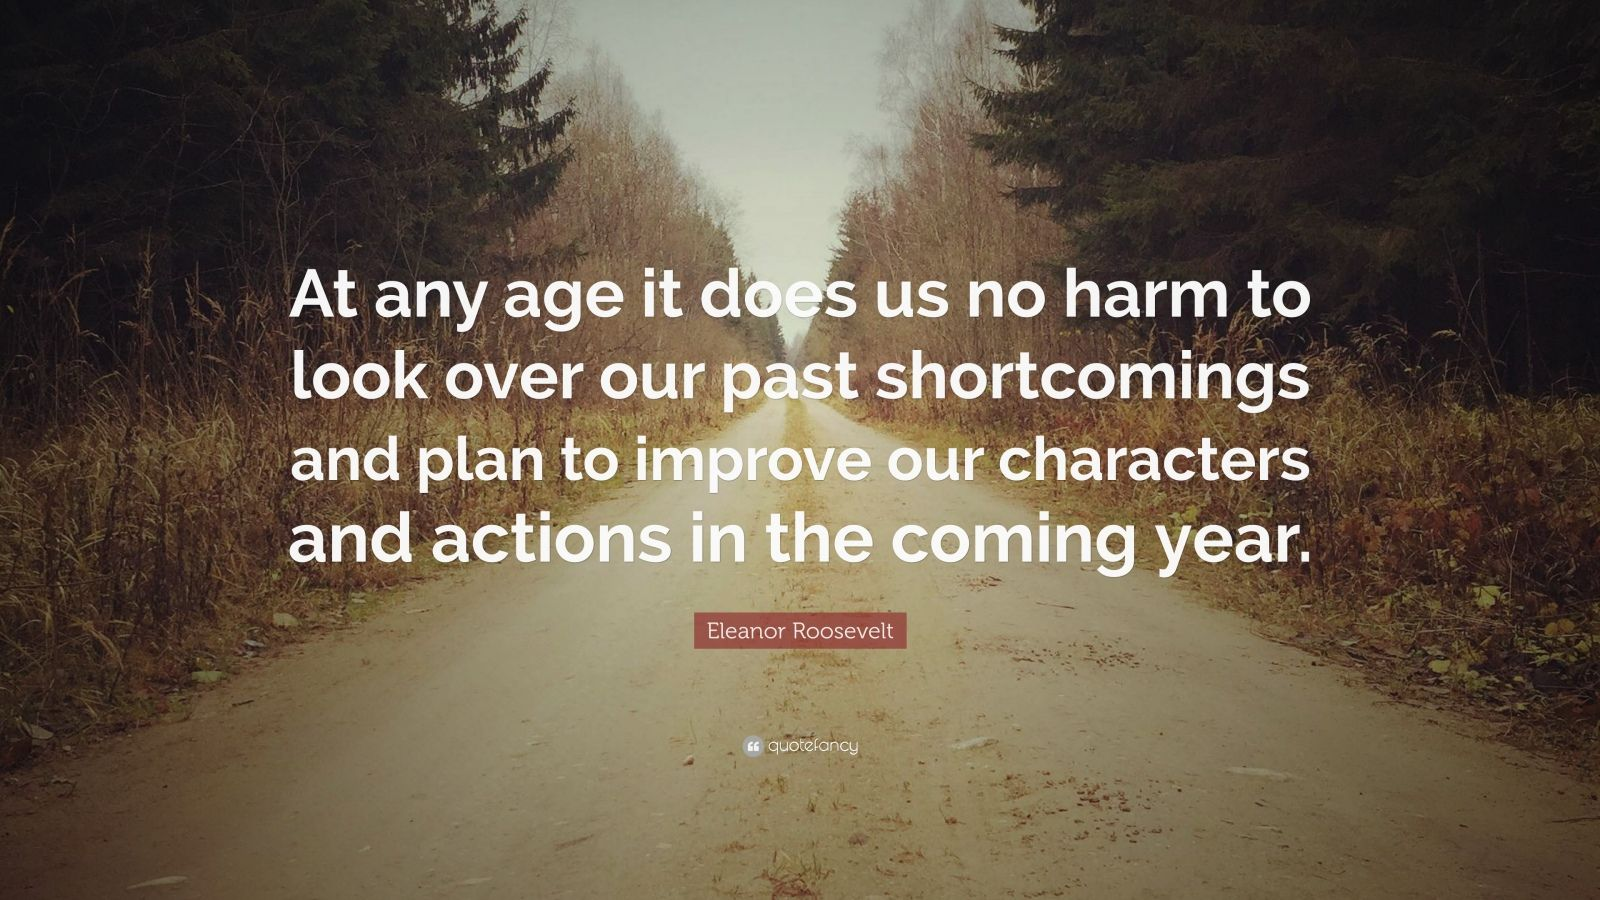 """Eleanor Roosevelt Quote: """"At any age it does us no harm to look over our past shortcomings and plan to improve our characters and actions in the coming year."""""""